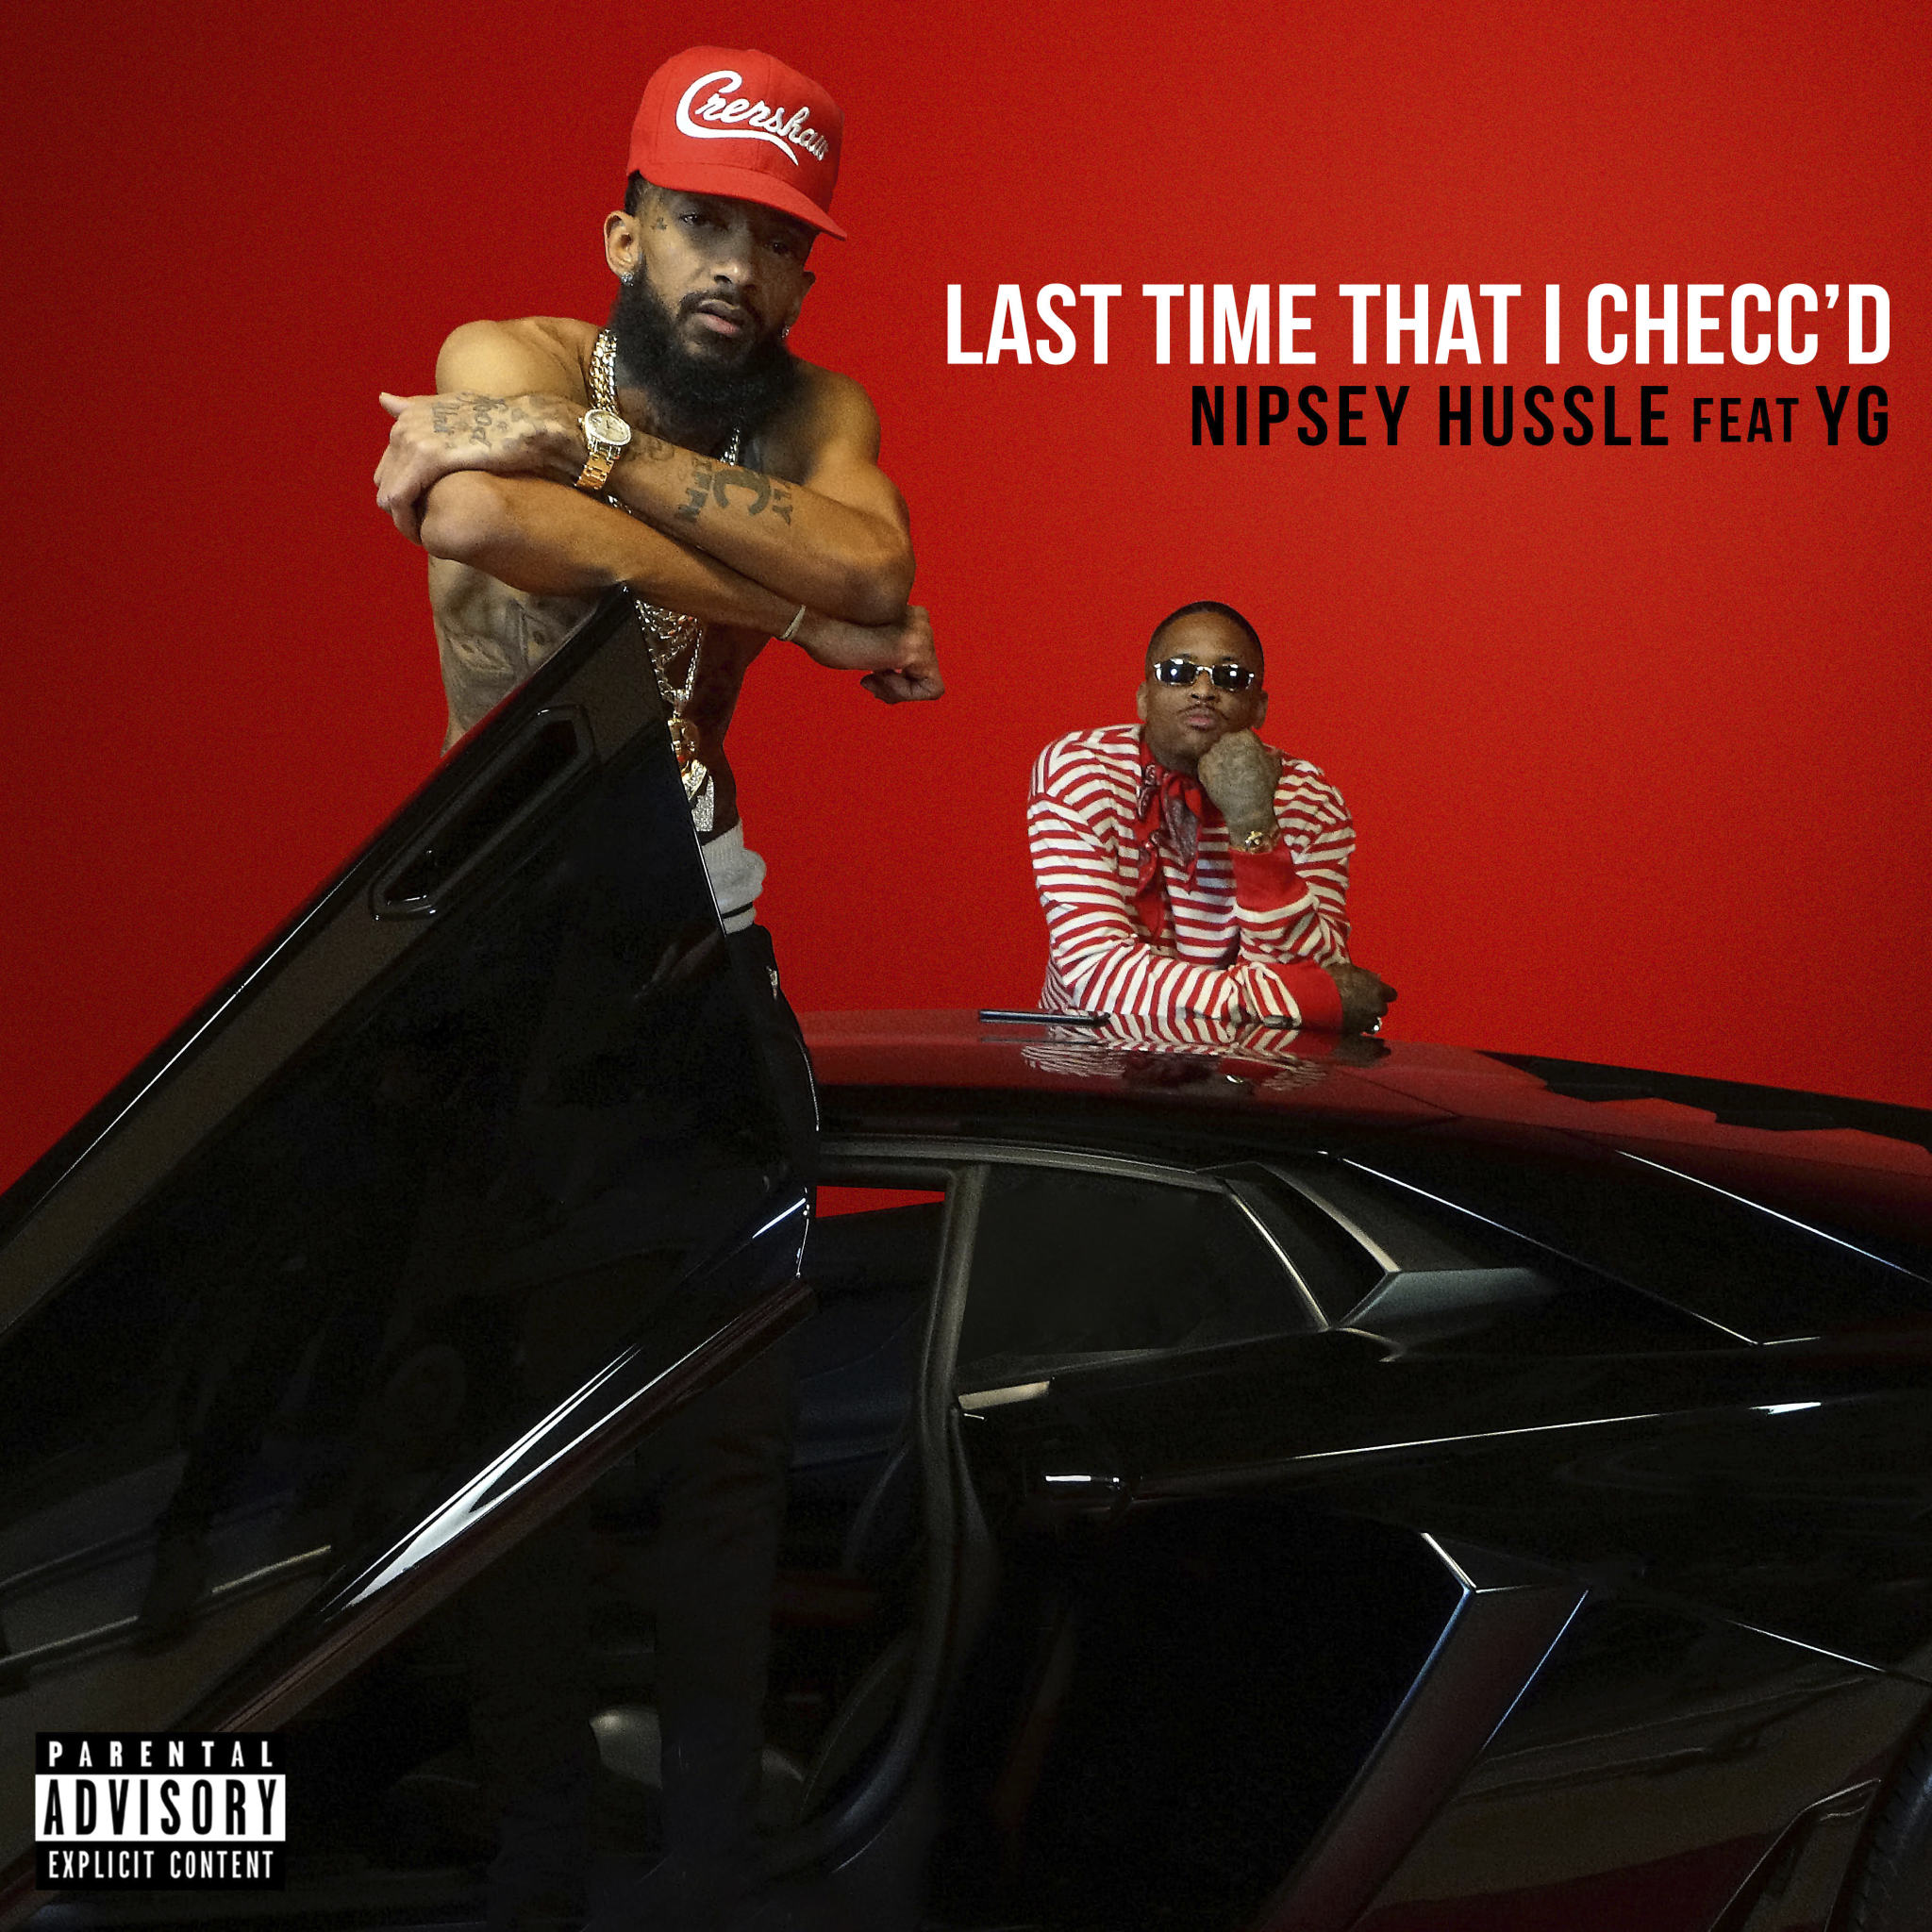 Art for Last Time That I Checc'd (Dj Rukus Intro Edit) (Dirty) by Nipsey Hussle Ft. YG